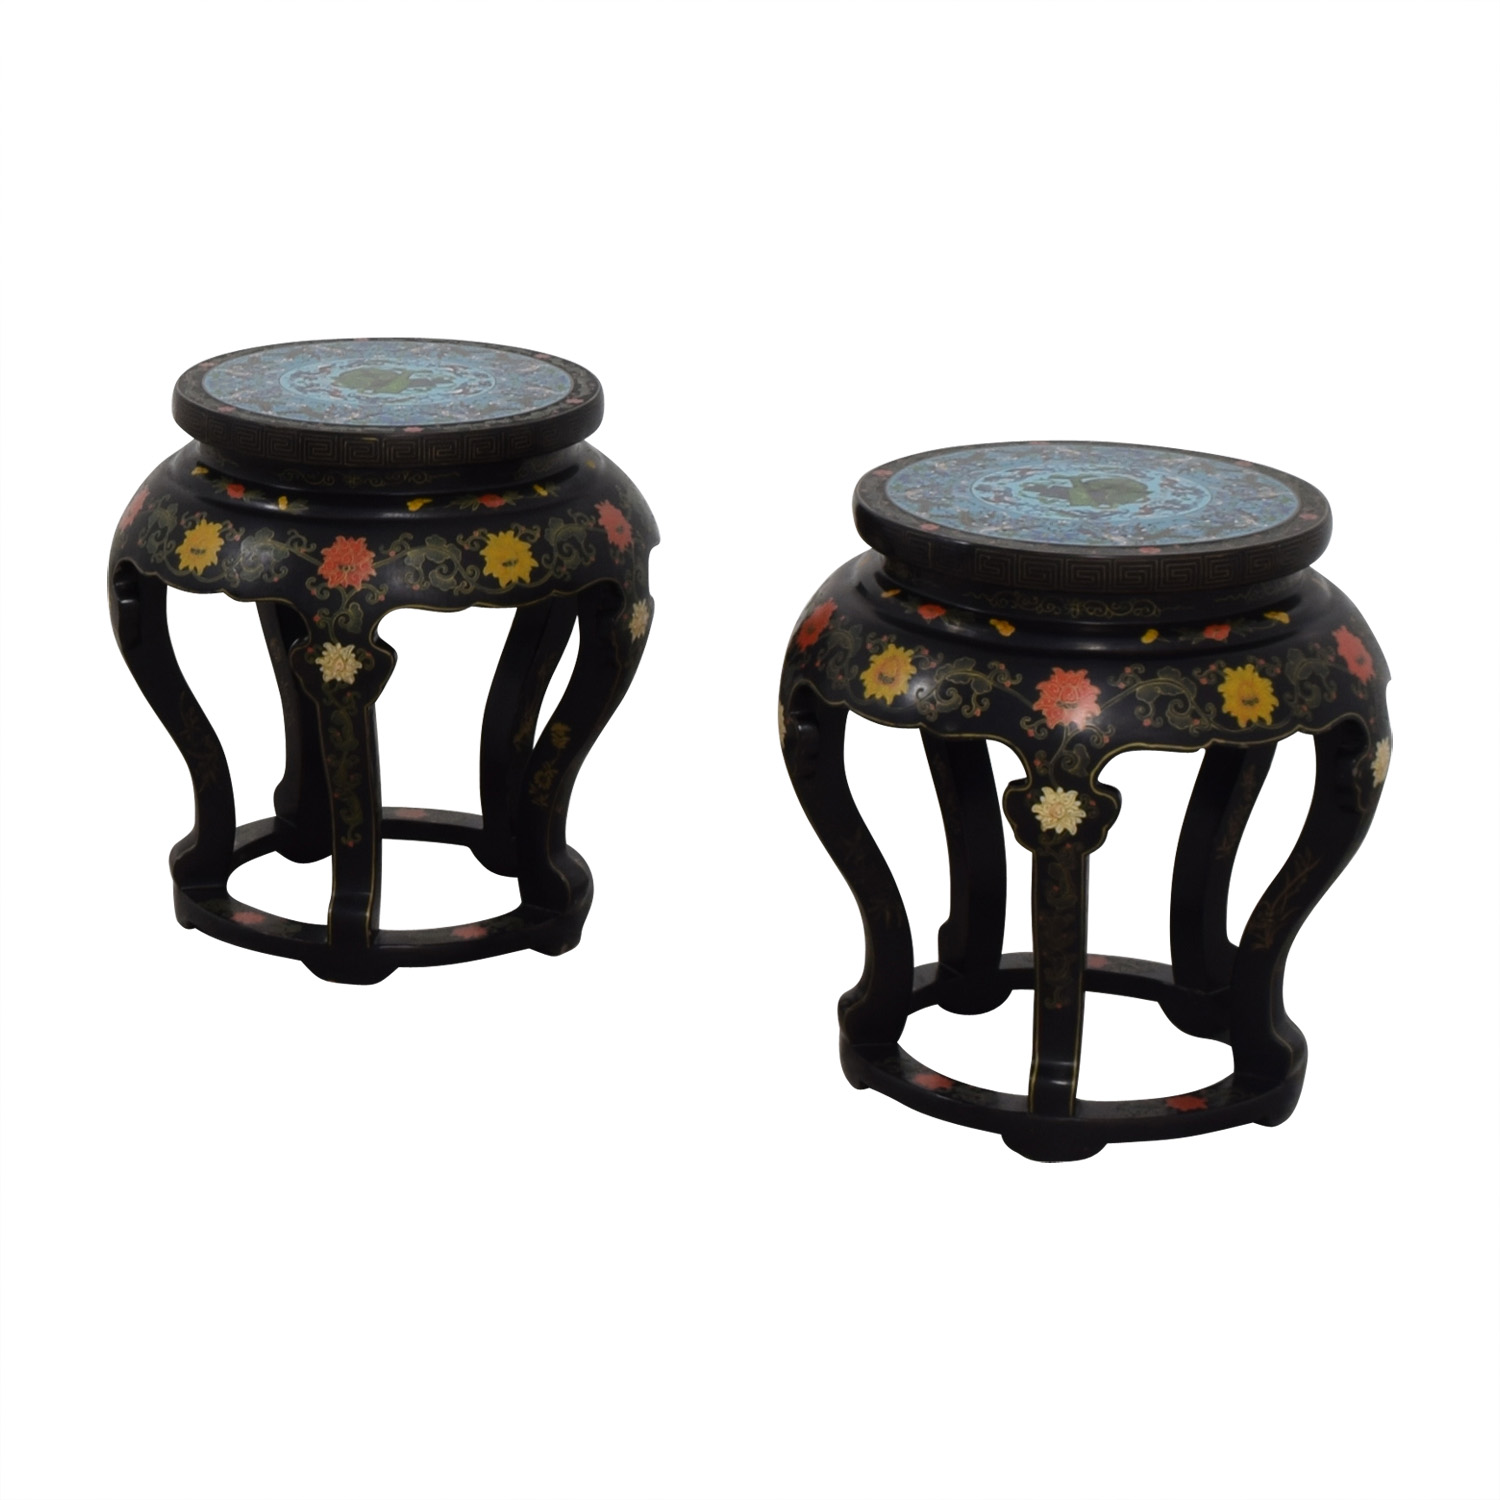 Antique Chinese Round Tables with Cloisonne Top on sale